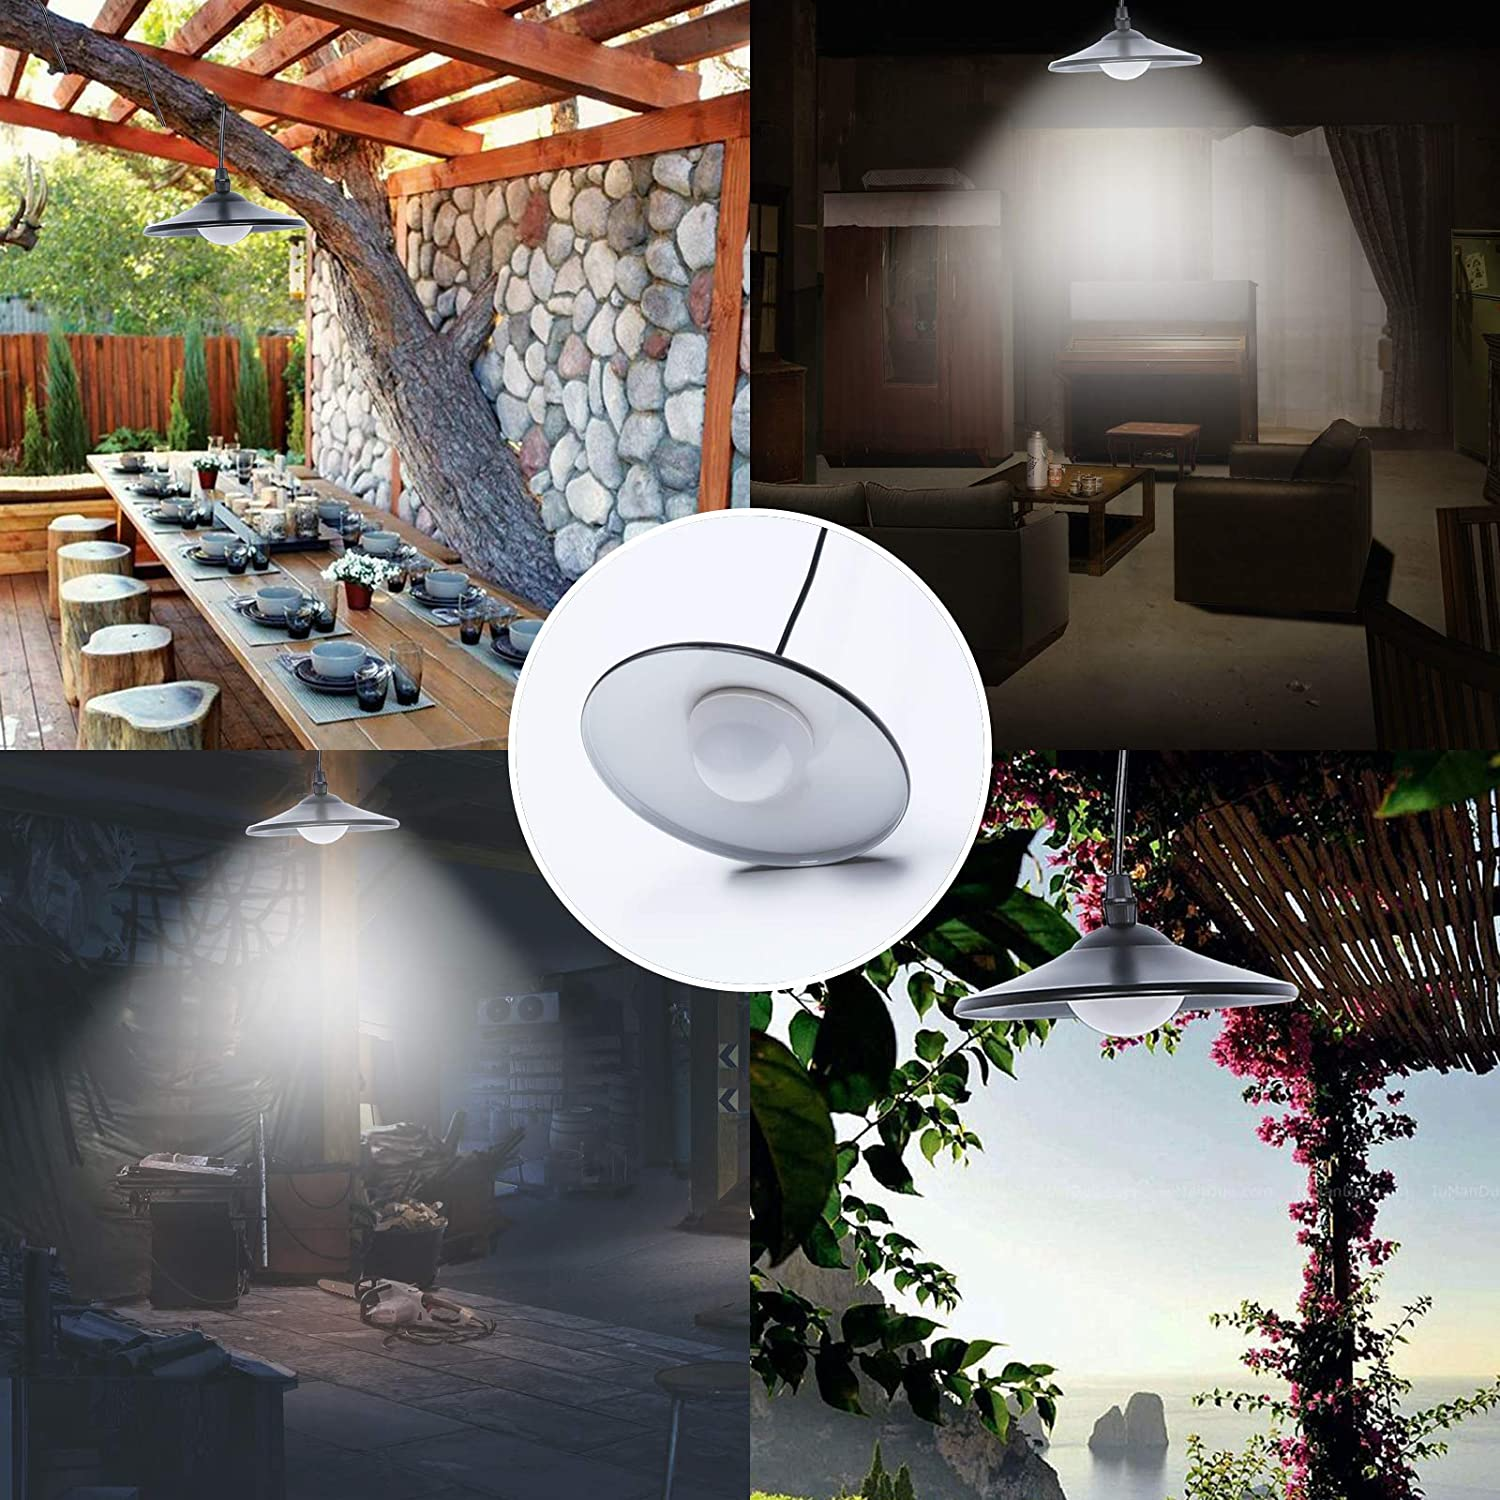 Solar Pendant Light - Indoor Barn Lights Led Shed Lights Waterproof Outdoor Hanging Solar Lamp with Remote Control and Pull Cord for Garden Yard Patio Balcony